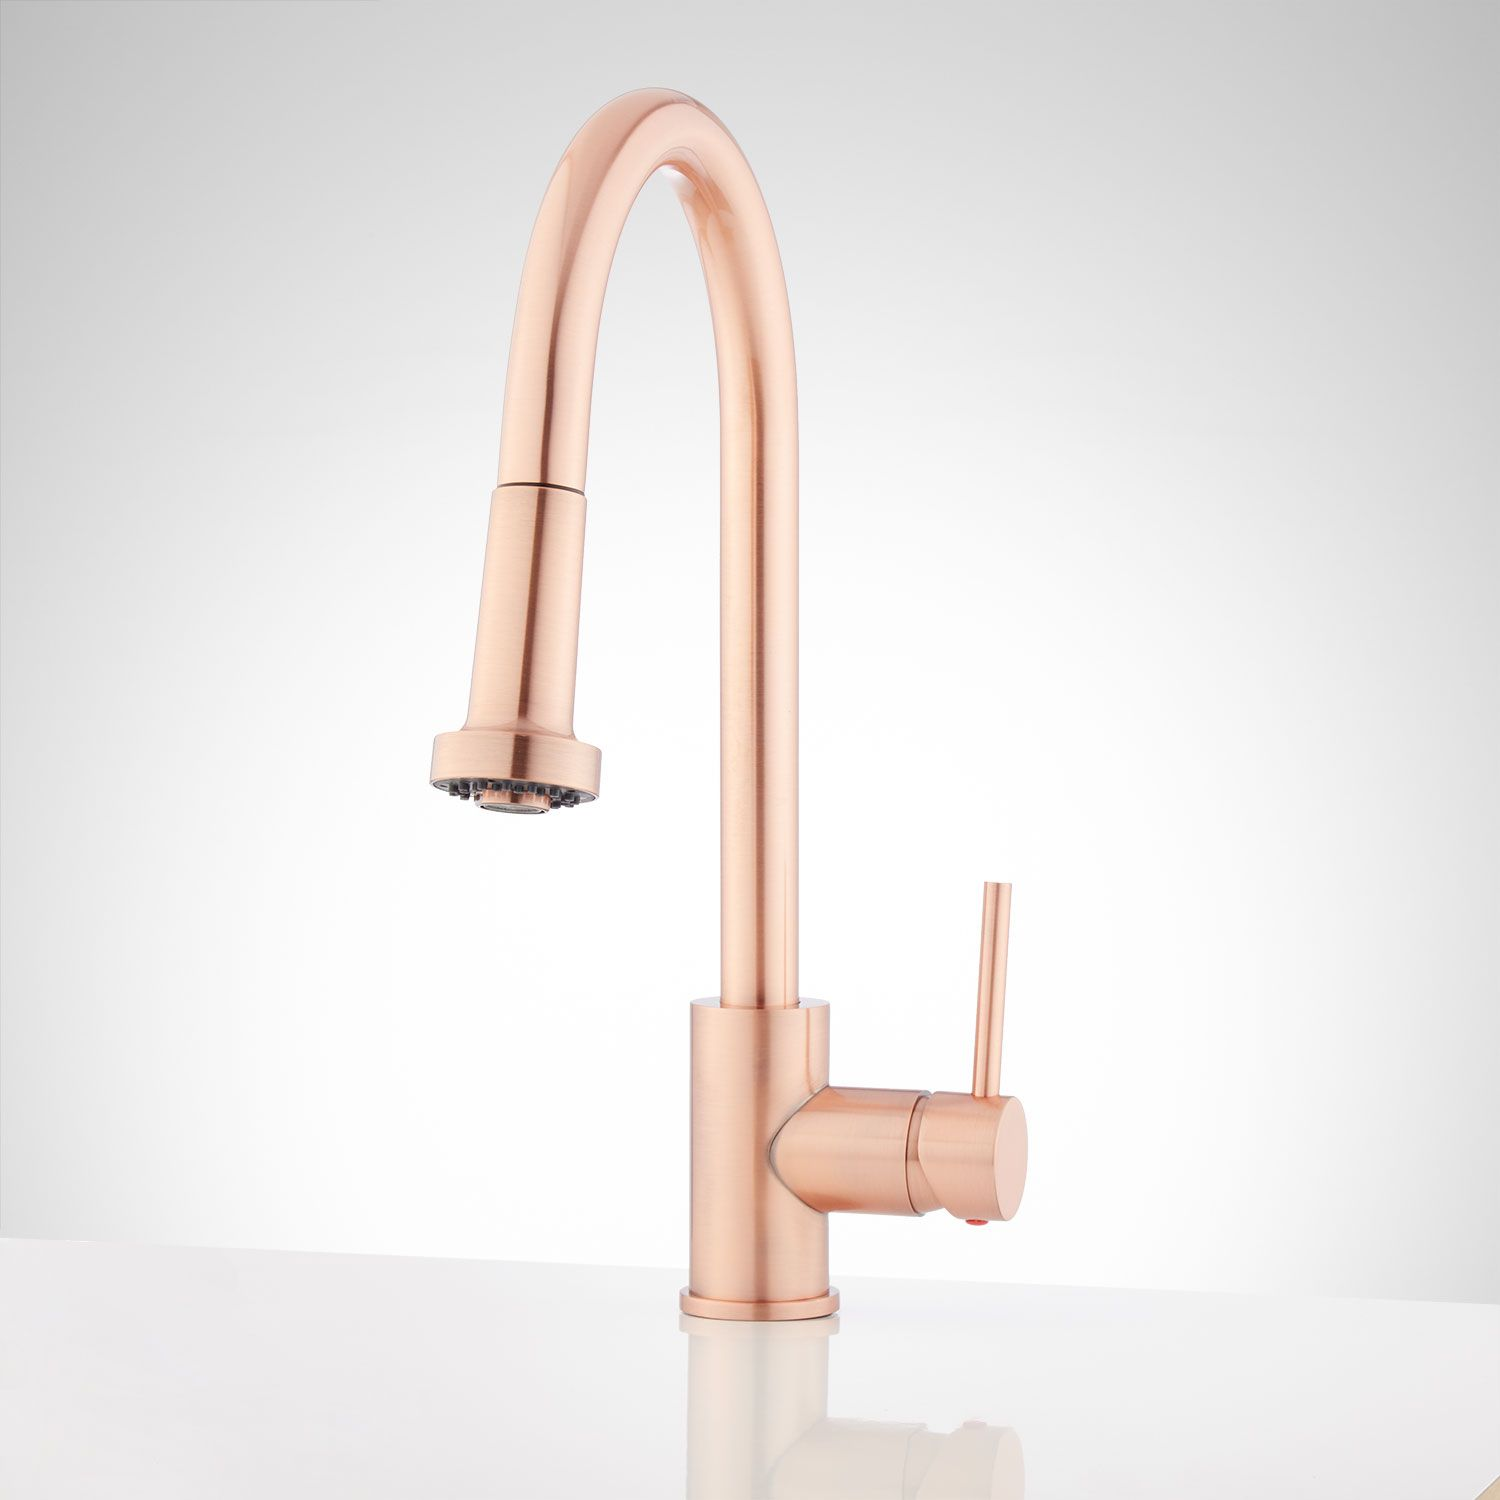 Royden Pull Down Kitchen Faucet In Copper Signature Hardware